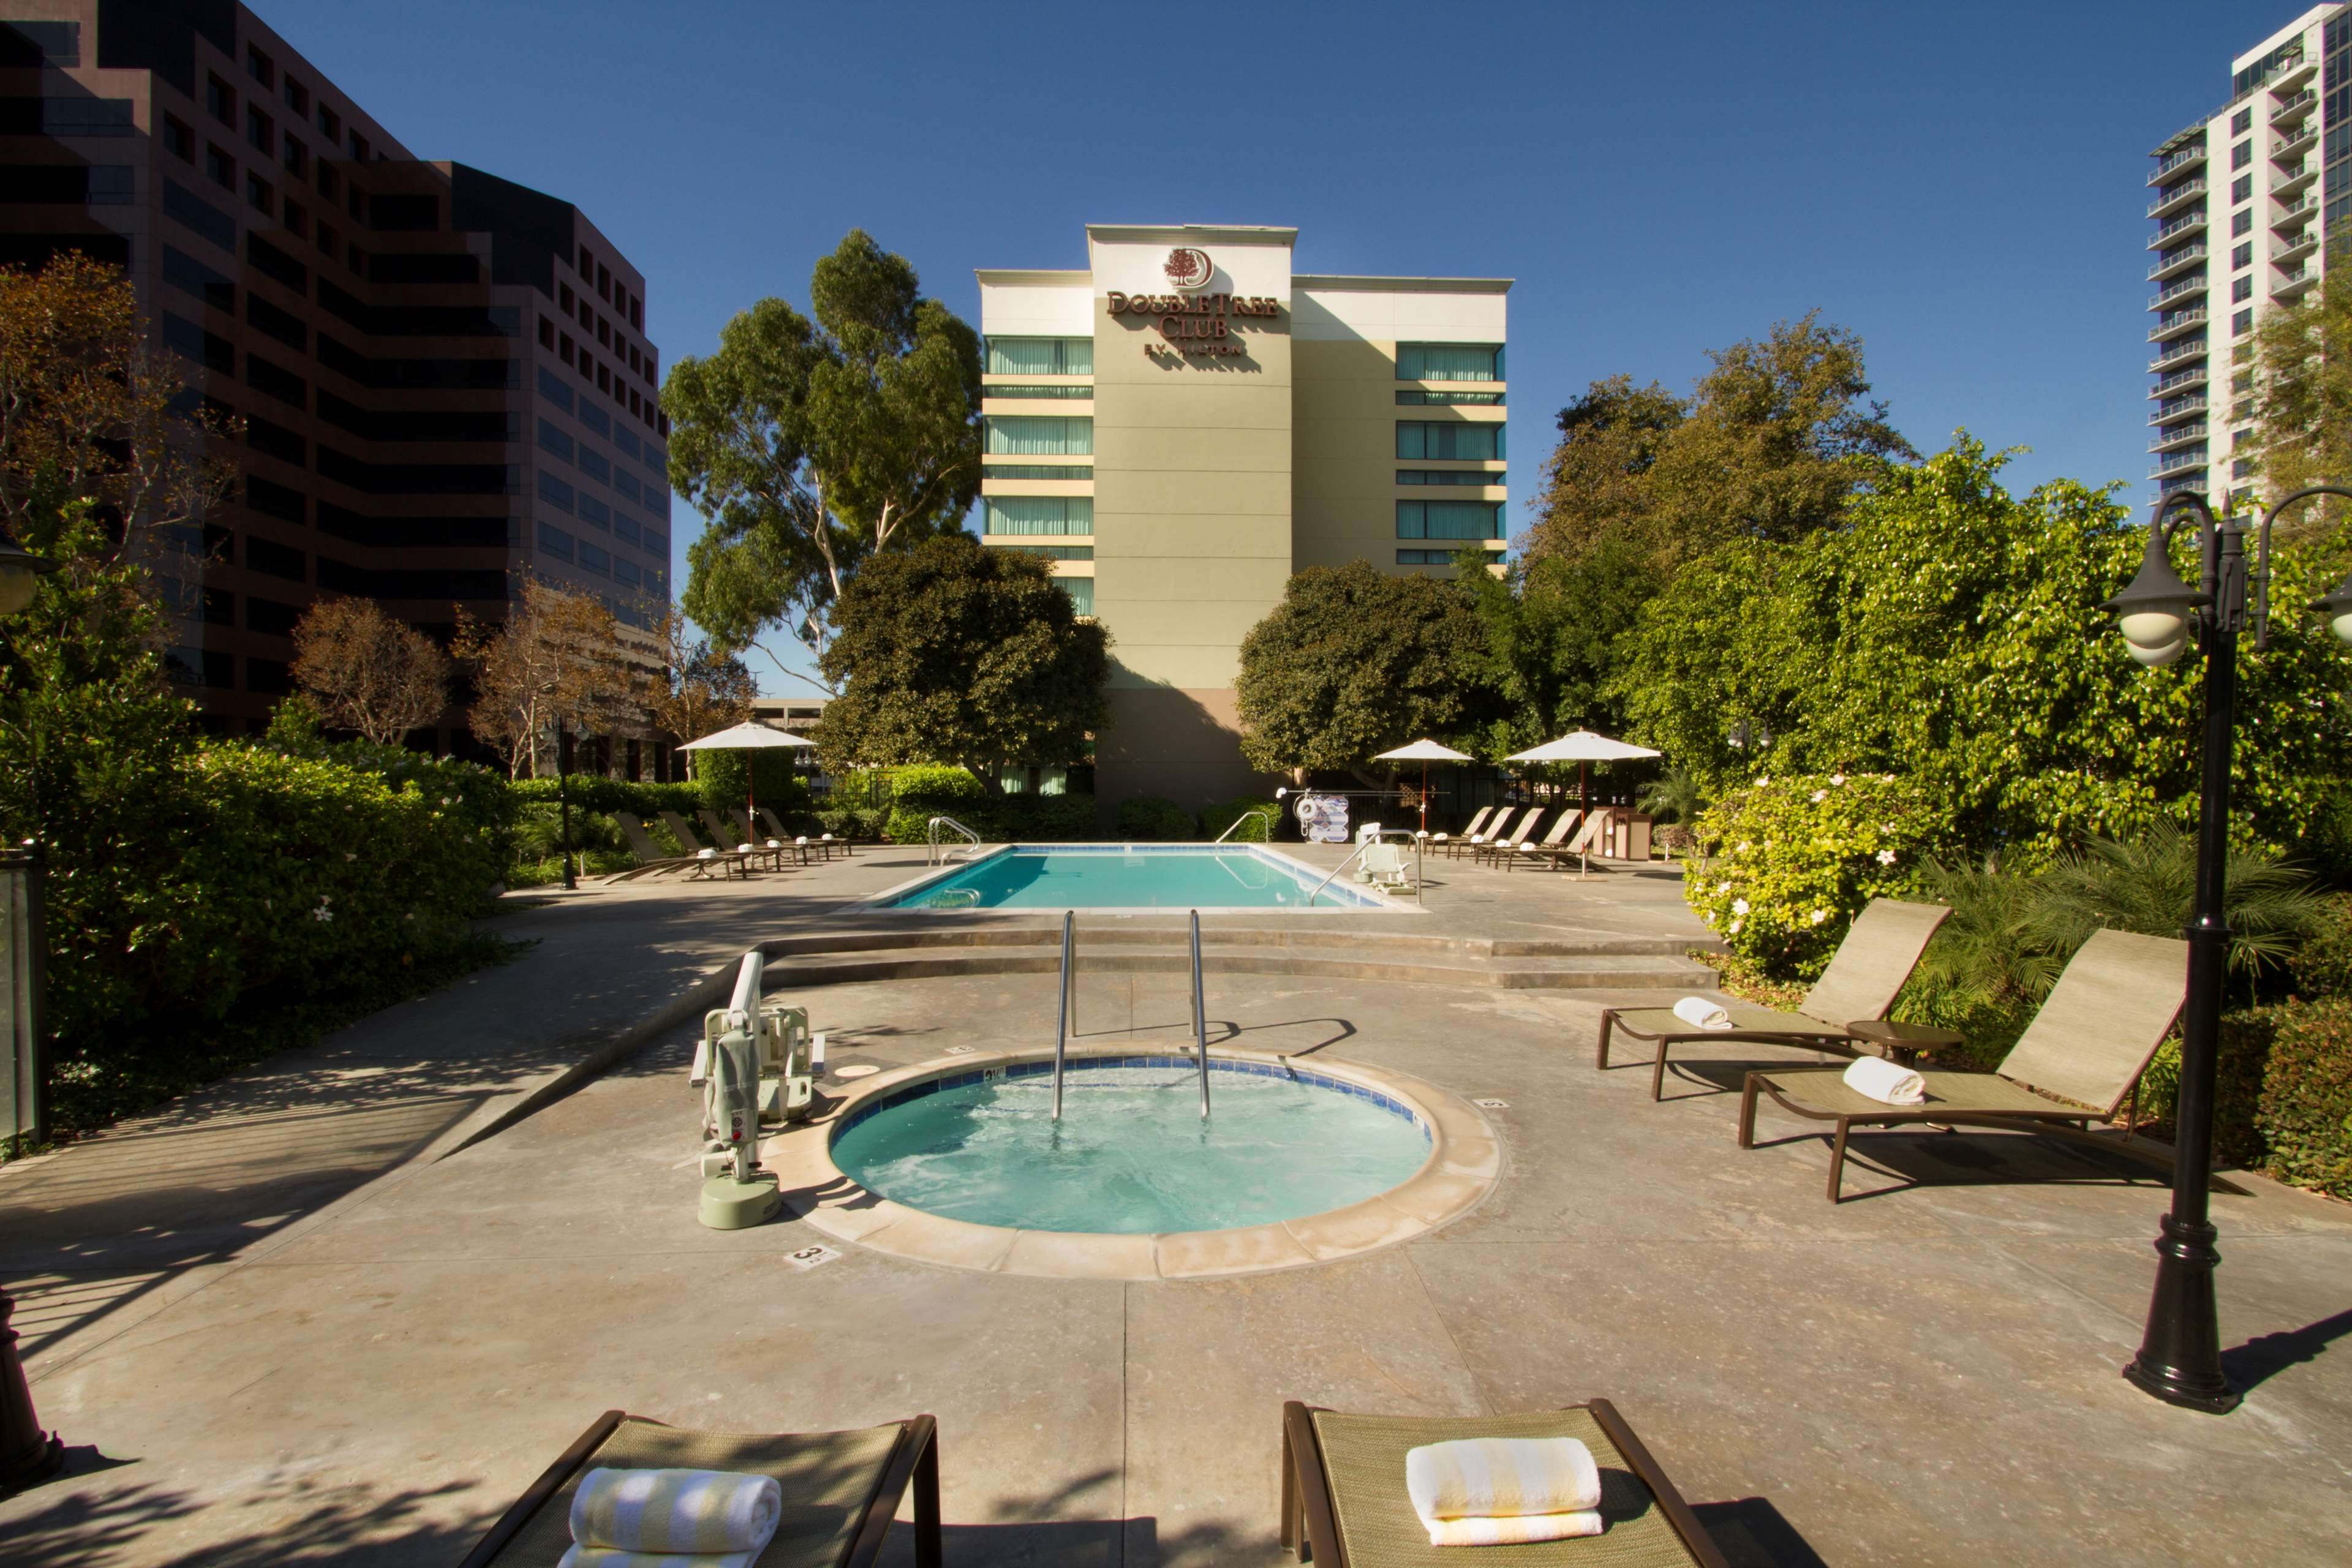 Hotels In Orange County Ca Near Airport